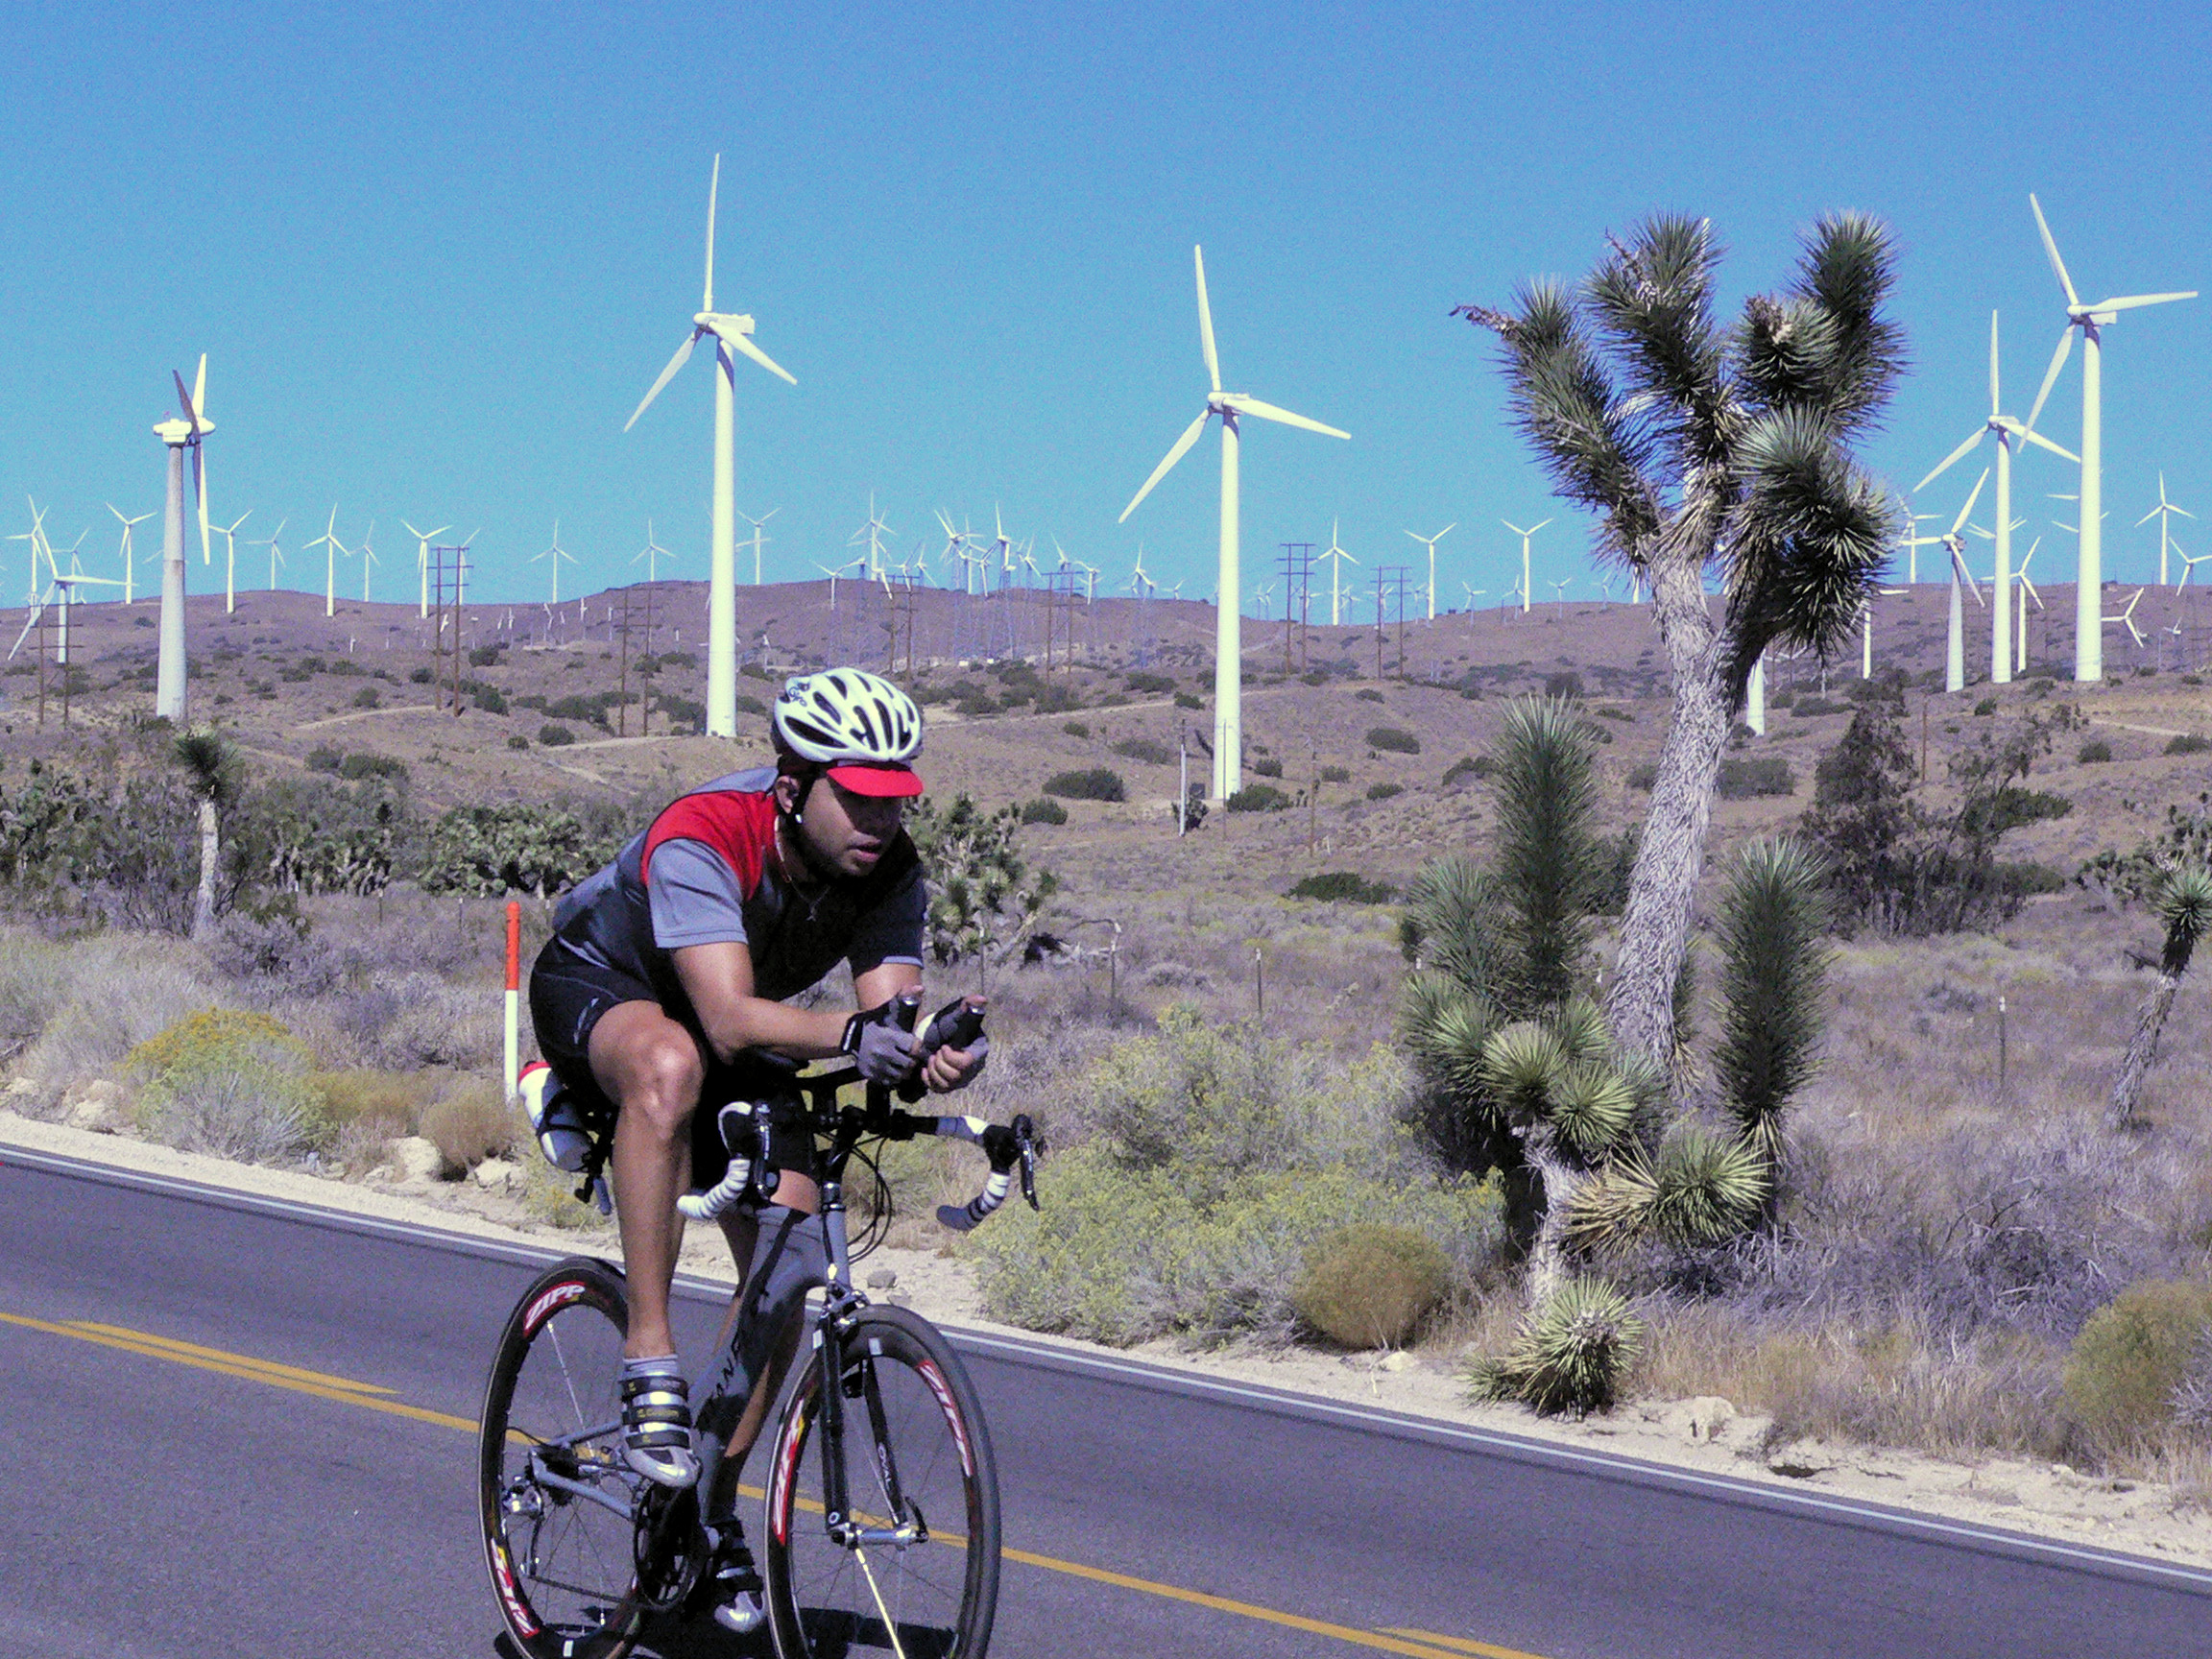 - Unicorn Cycles started with Jason and his journey started at the Furnace Creek 508 in 2004. This epic race was attempted after purchasing his first road bike only 1 year prior. During this race he crashed at 300 miles. Despite possible fractures he pushed himself and completed 400 miles before the 48 hour cut-off.